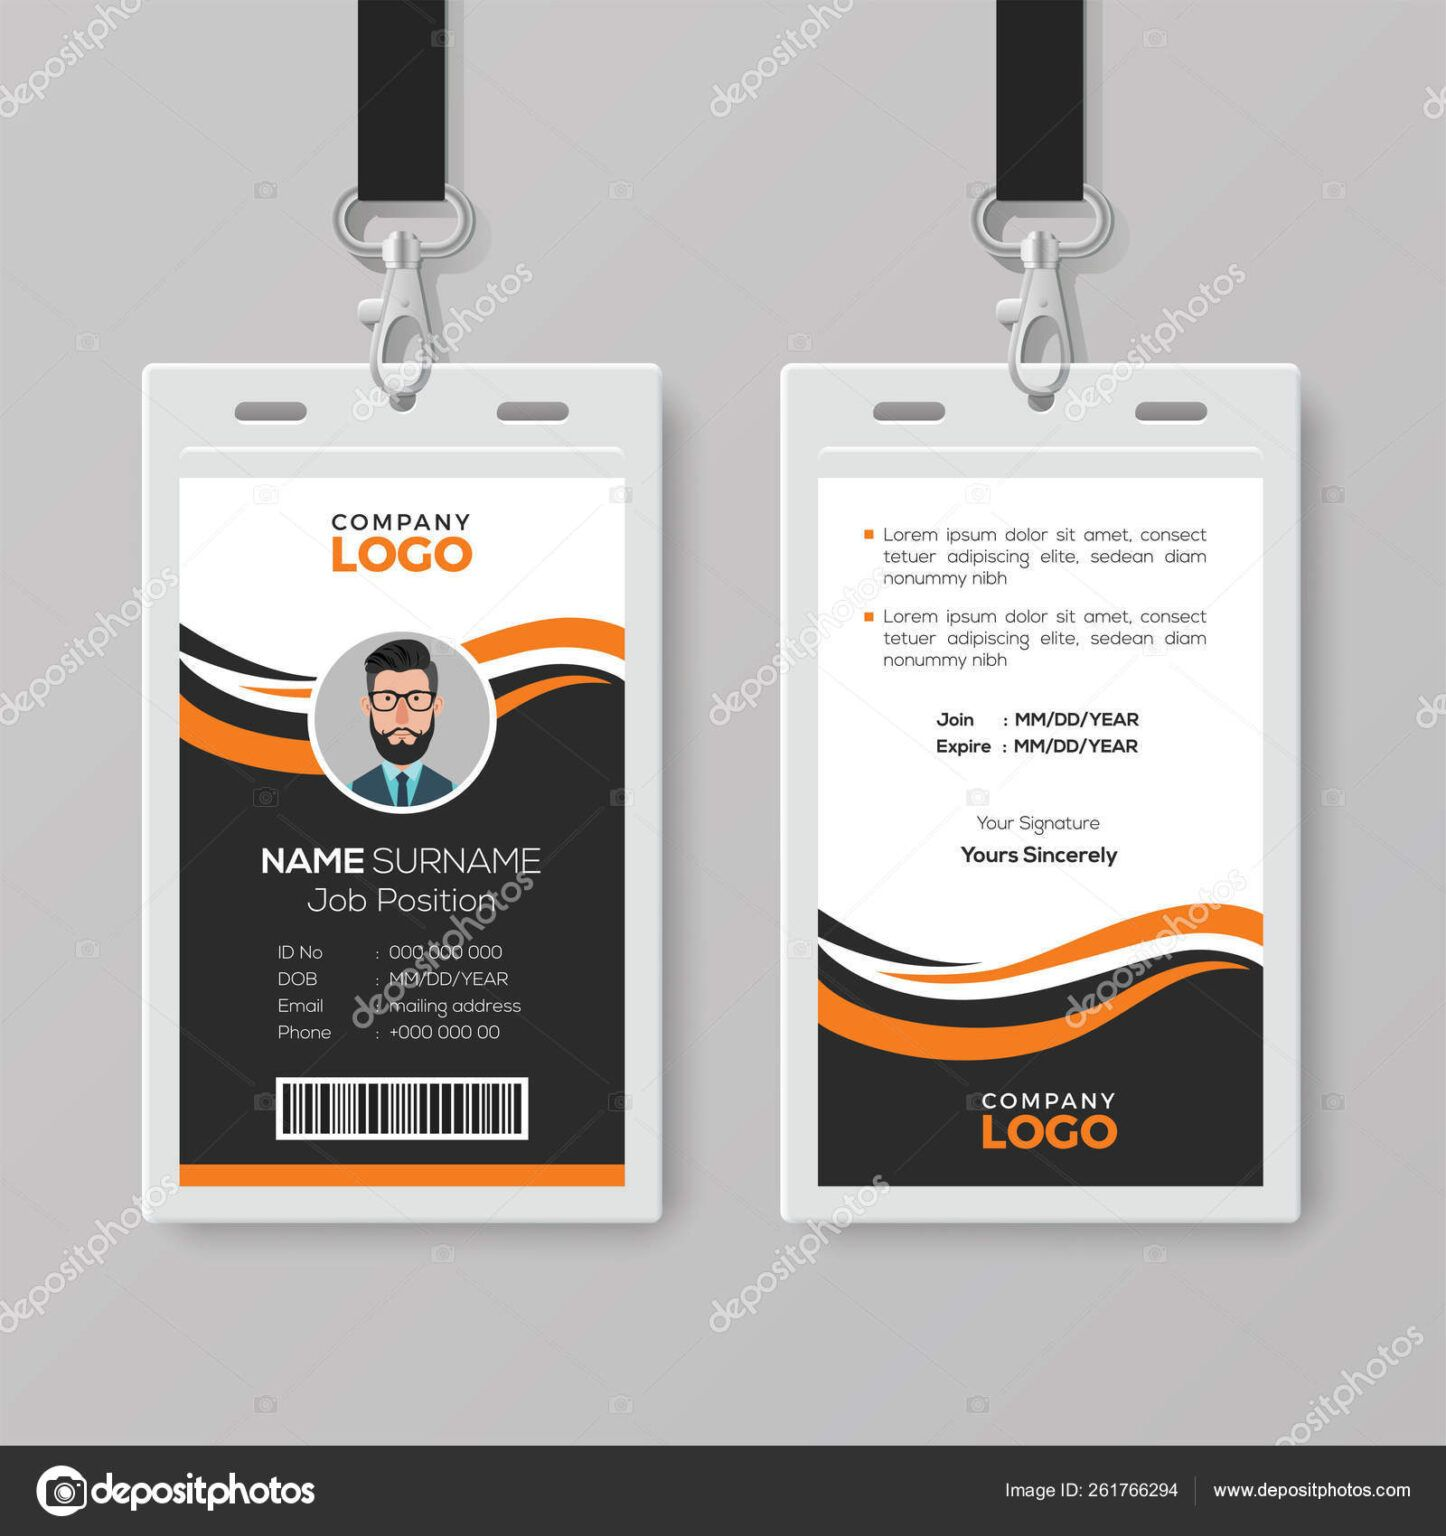 Creative Modern Id Card Template With Orange Details Stock For Photographer Id Ca In 2020 Id Card Template Free Business Card Templates Business Card Template Design